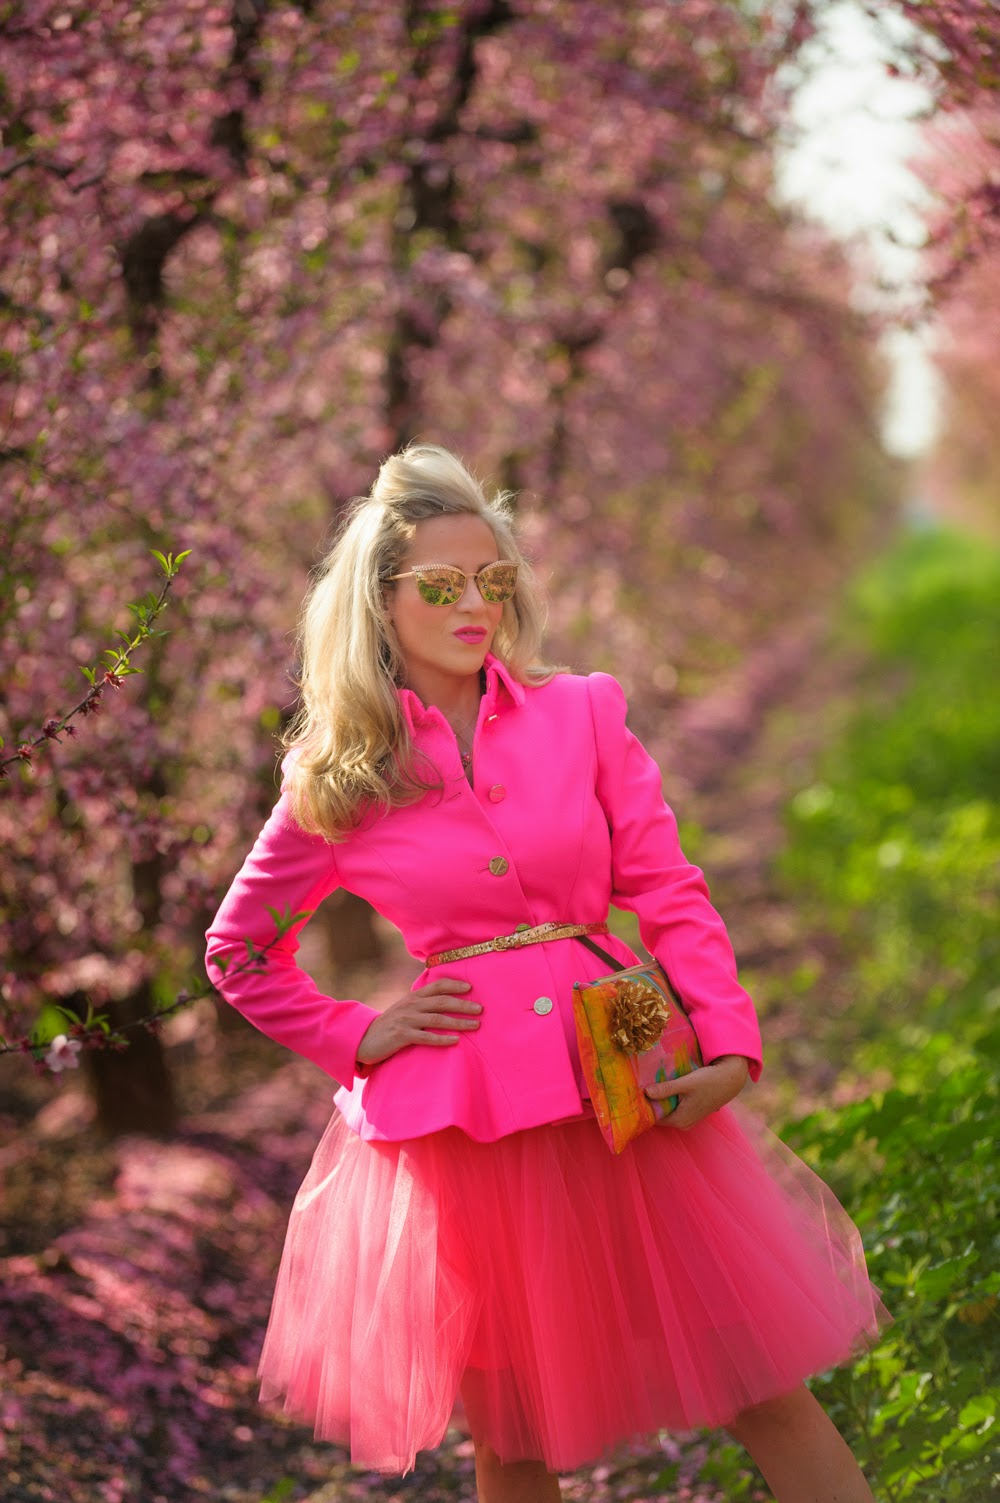 Pinktastic Saturday: Flannery Good The Fashion Tweaker